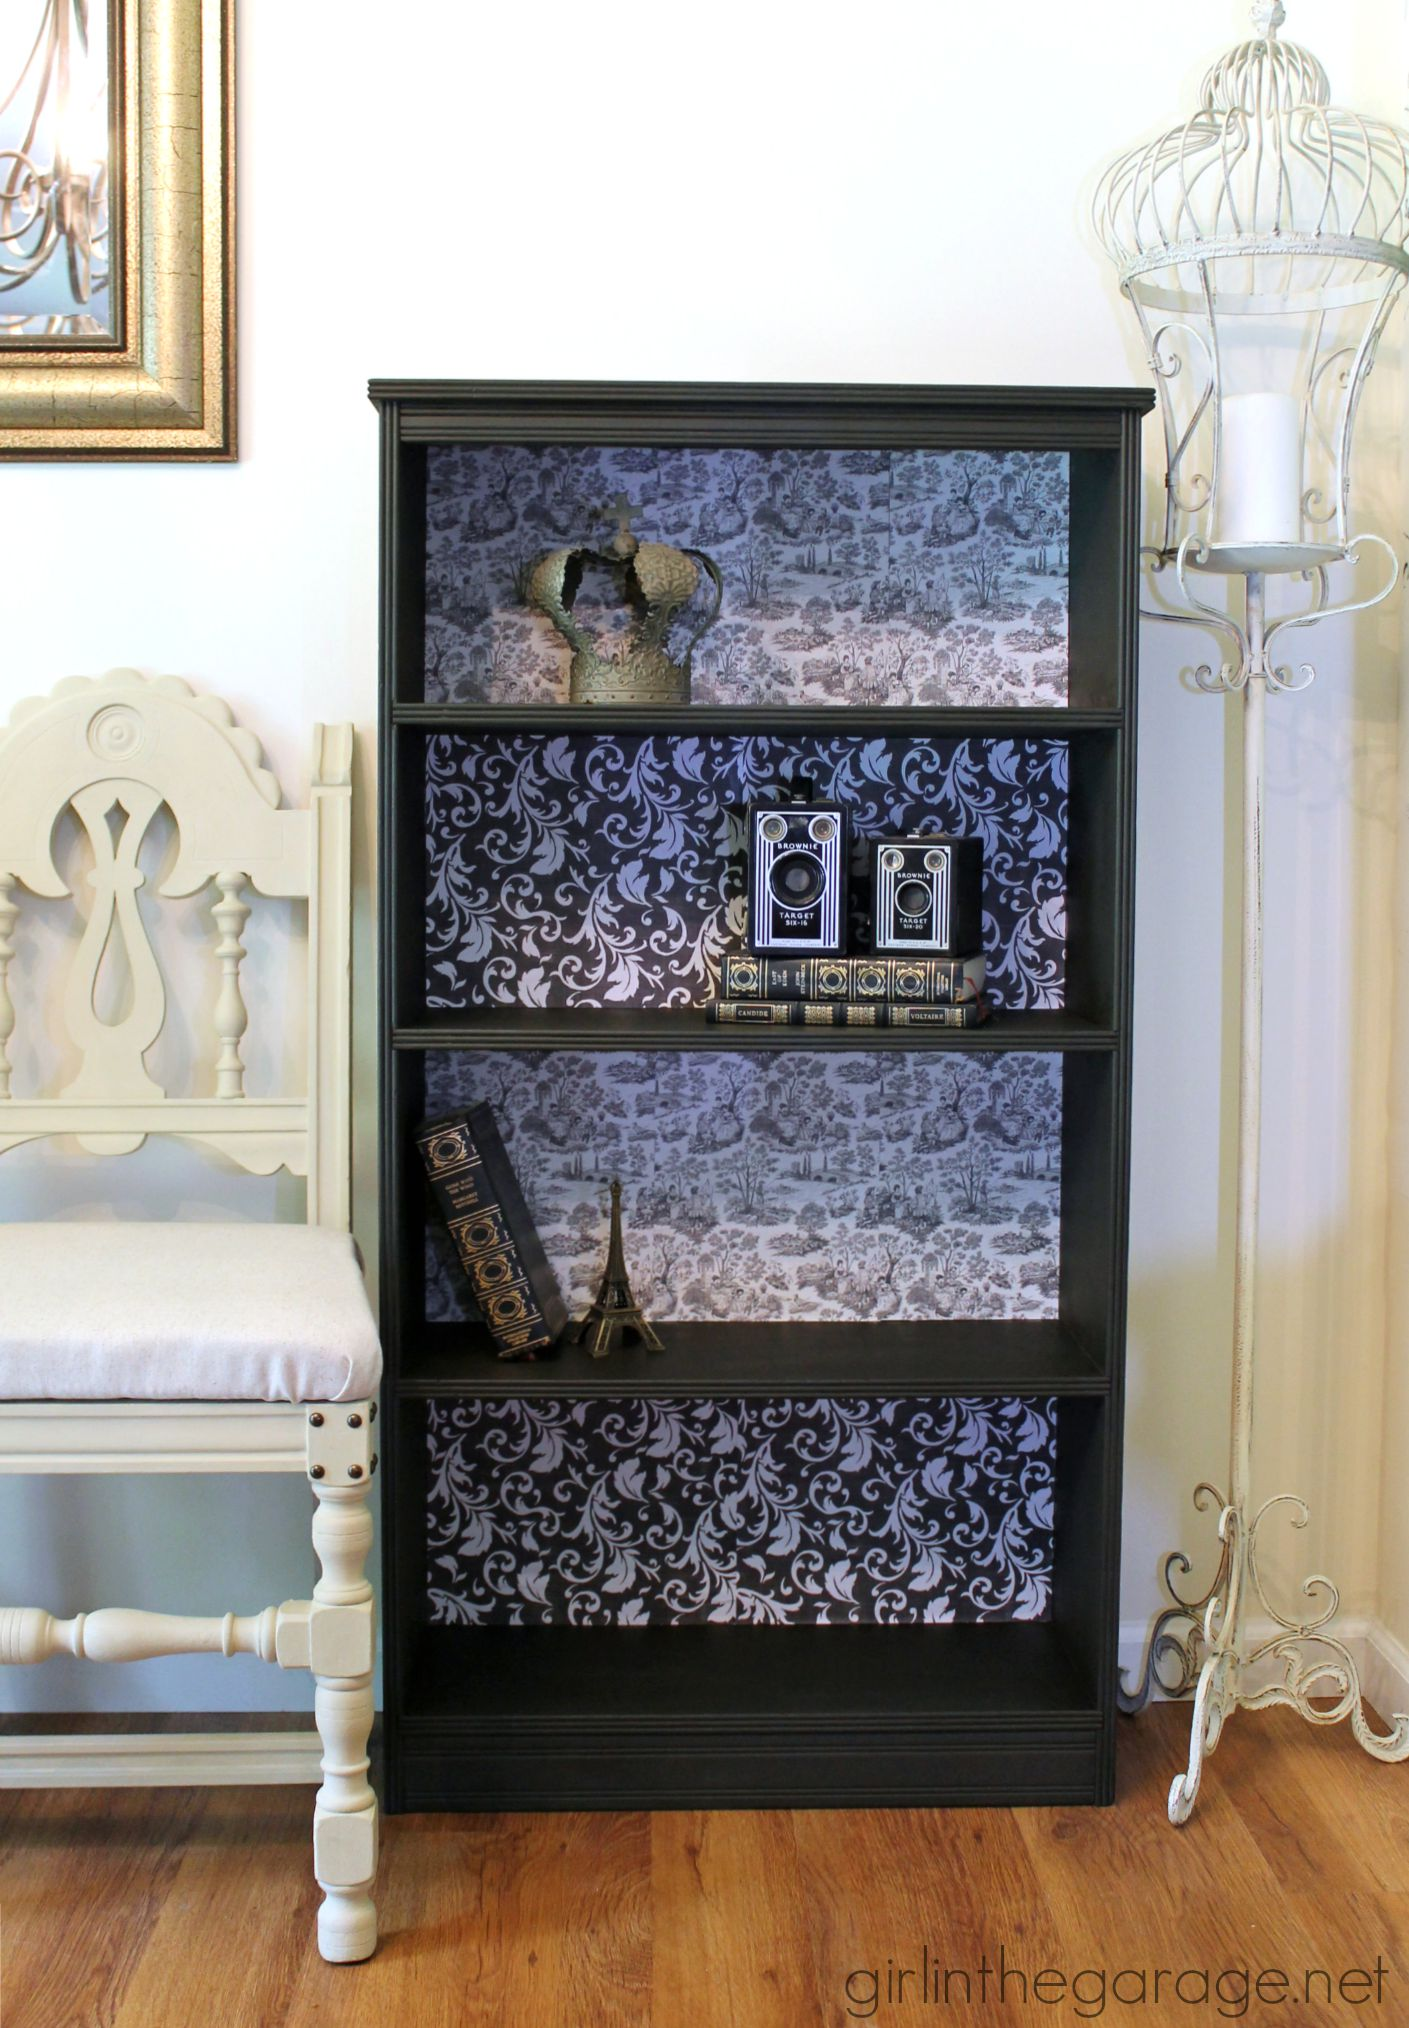 French Decoupage Bookcase Makeover with Mod Podge - Girl in the Garage